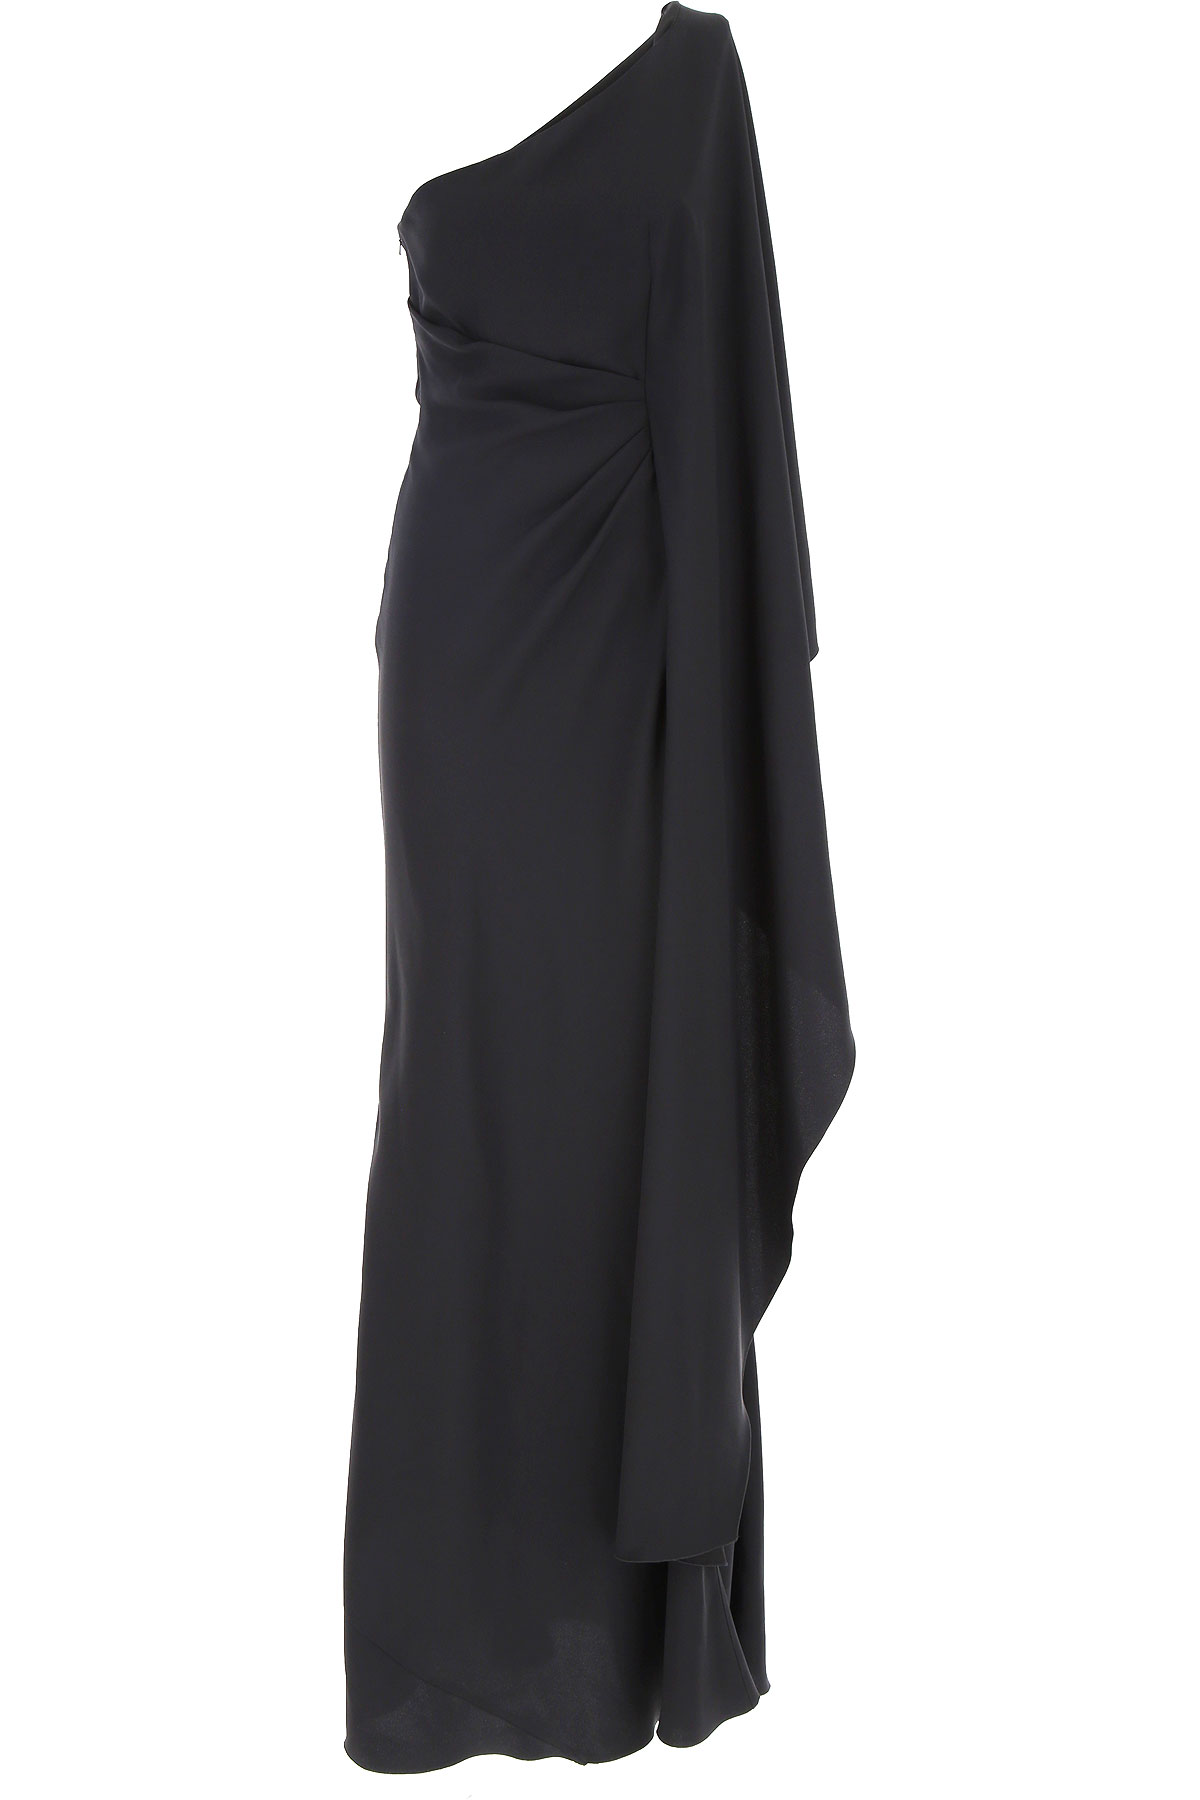 Alberta Ferretti Dress for Women, Evening Cocktail Party On Sale, Black, acetate, 2019, 6 8